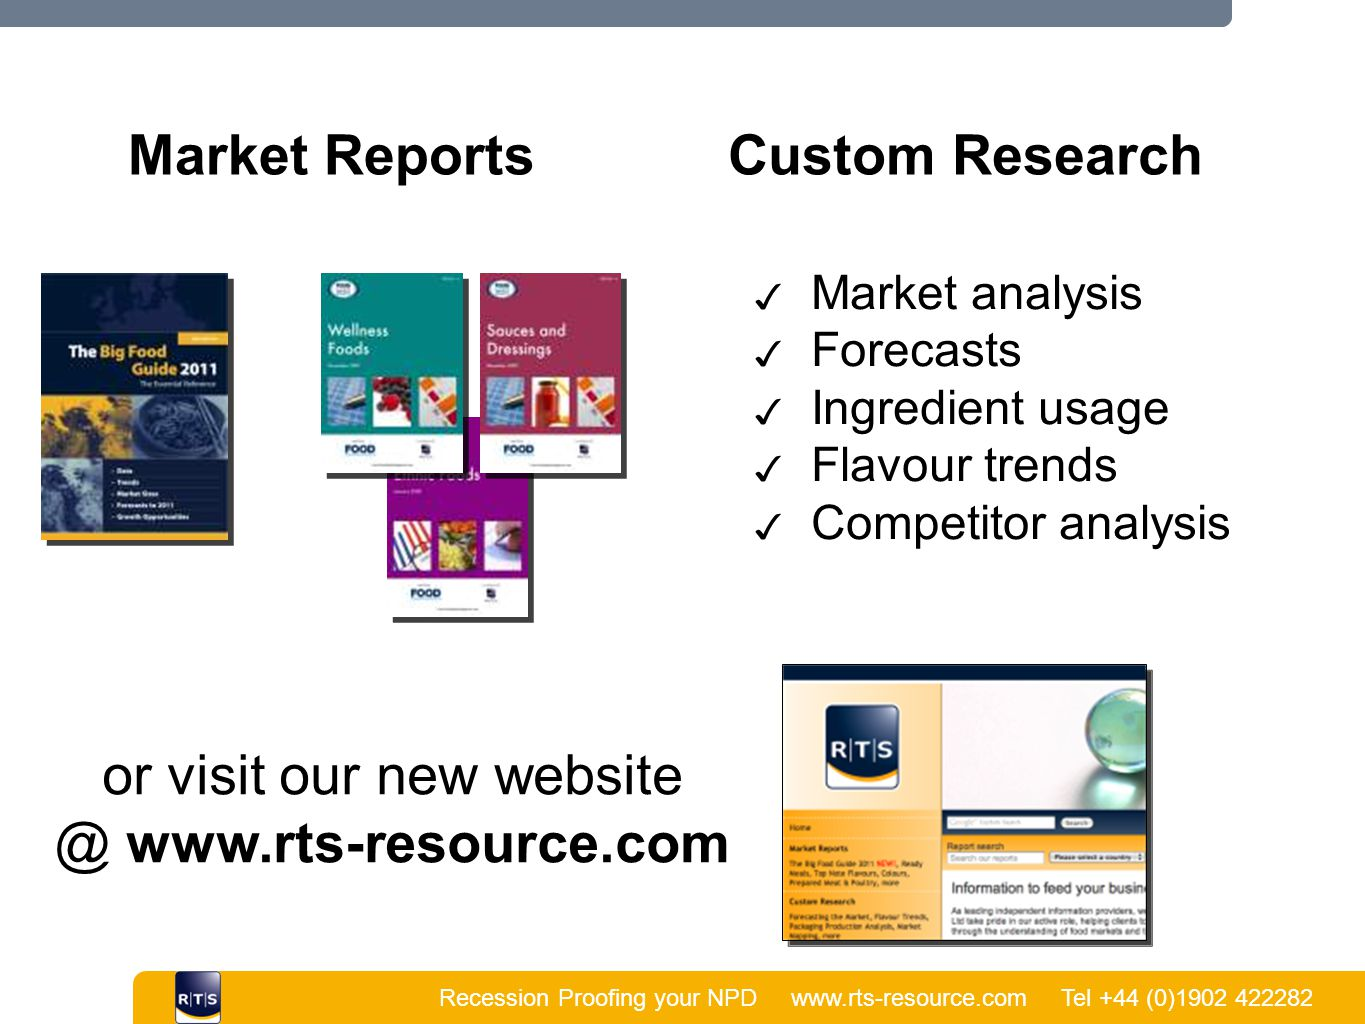 Recession Proofing your NPD www.rts-resource.com Tel +44 (0)1902 422282 | Market ReportsCustom Research or visit our new website @ www.rts-resource.com ✓ Market analysis ✓ Forecasts ✓ Ingredient usage ✓ Flavour trends ✓ Competitor analysis